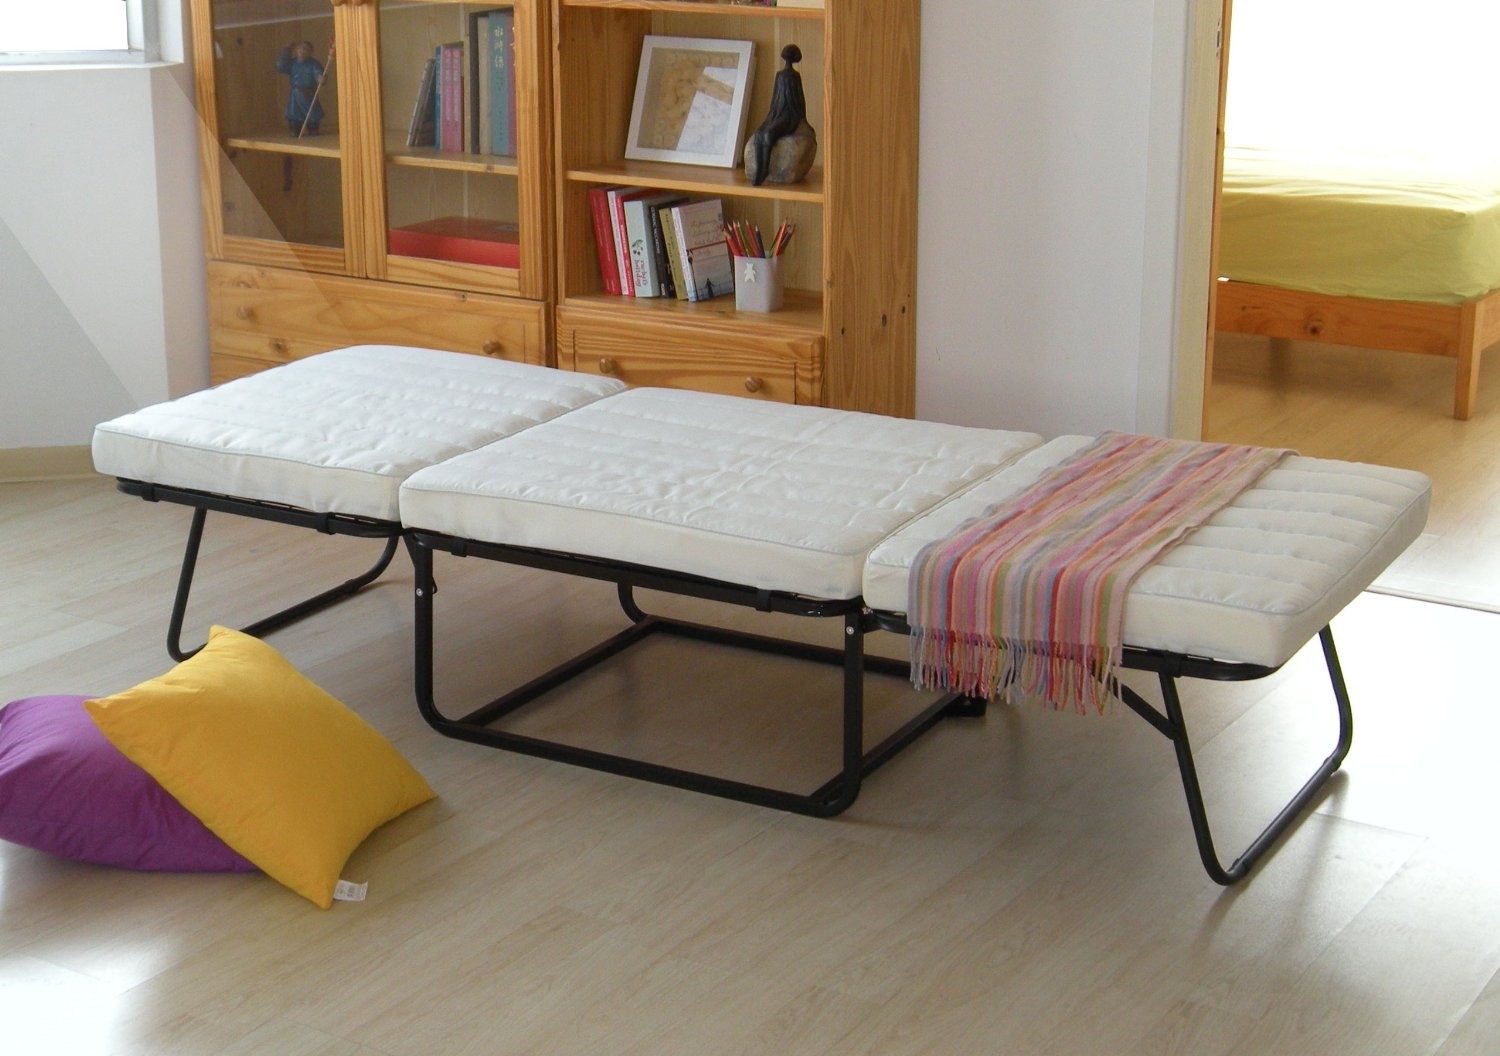 Ikea guest bed: easy and practical way to welcome your guest ...